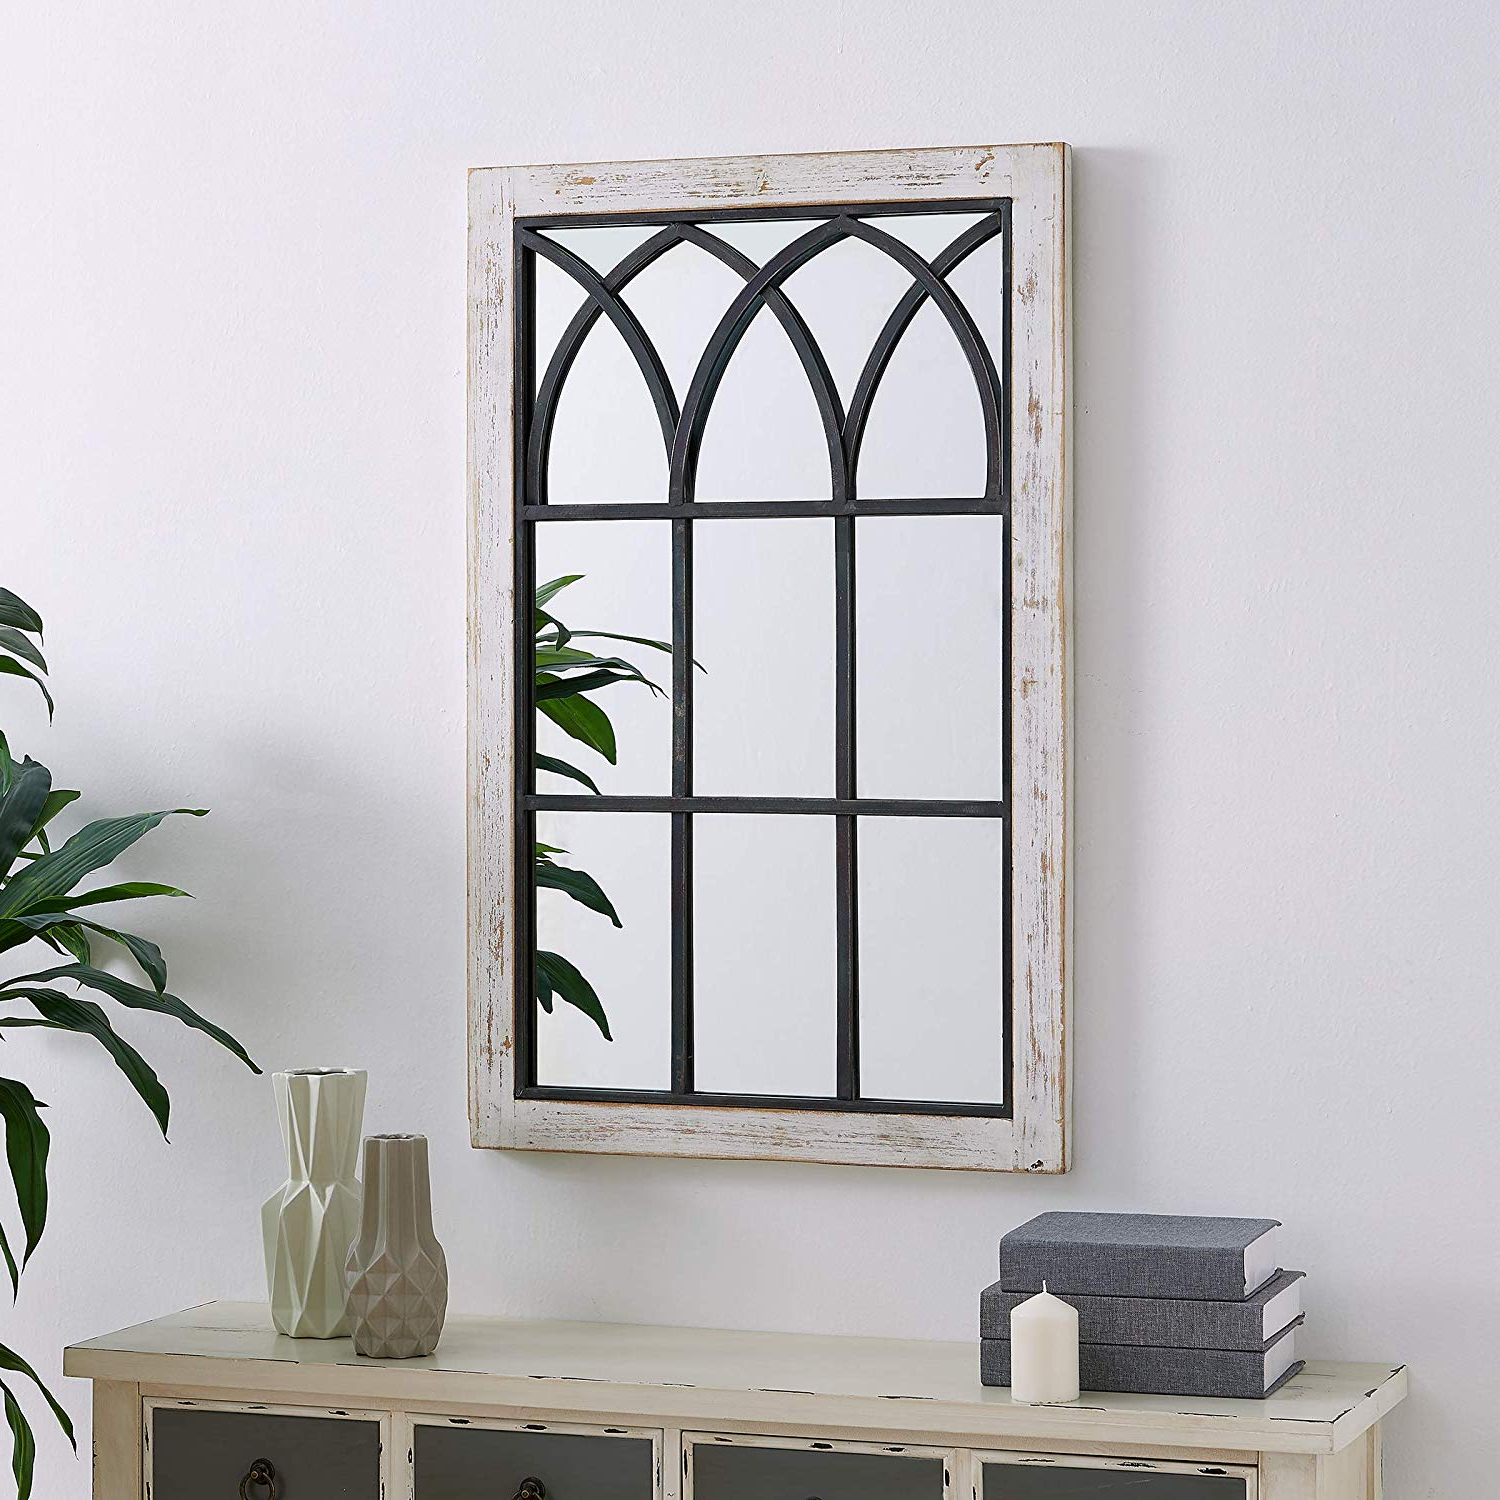 "Preferred Firstime & Co. 70024 Vista Arched Window Accent Wall Mirror, 37.5"" X 24"",  Distressed White Pertaining To Arched Wall Mirrors (Gallery 19 of 20)"